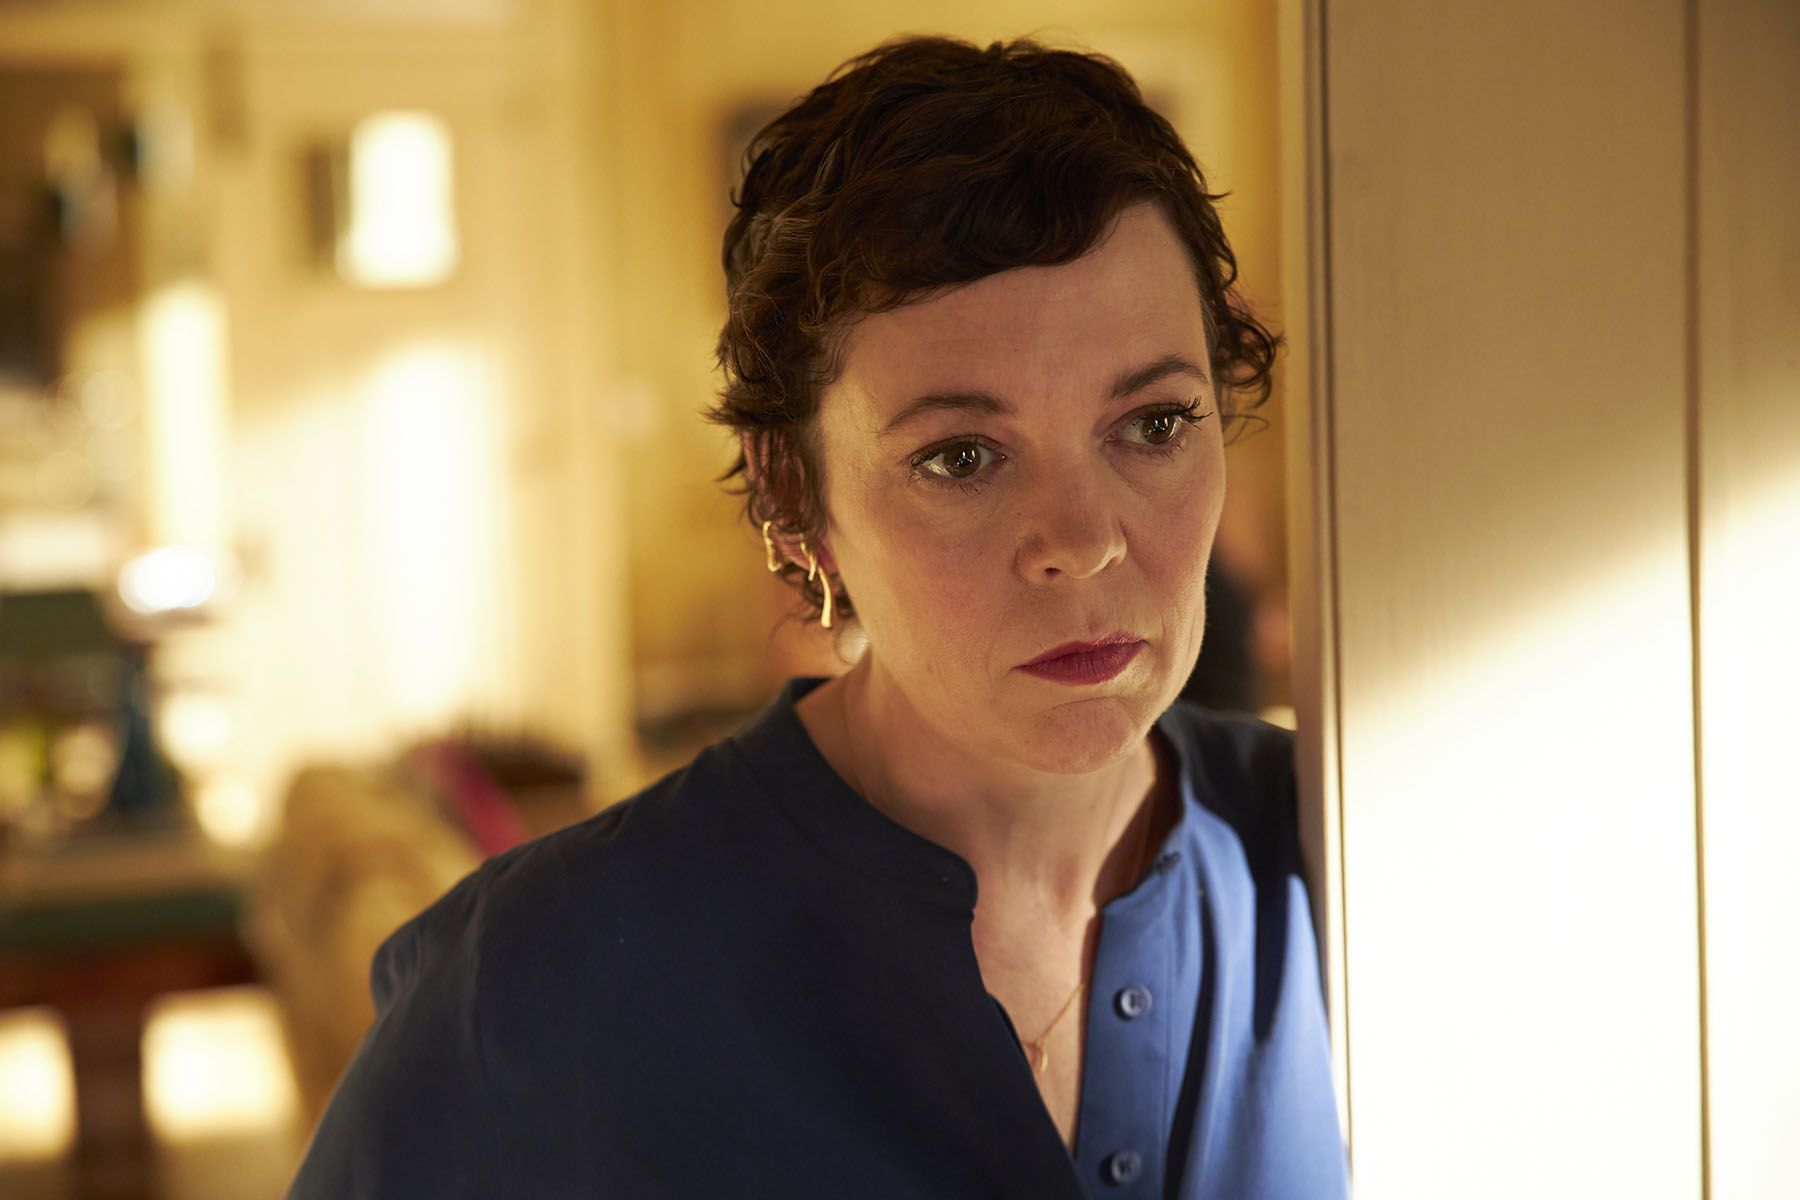 Olivia Colman knows what she's doing, even when she doesn't - Esquire Middle East